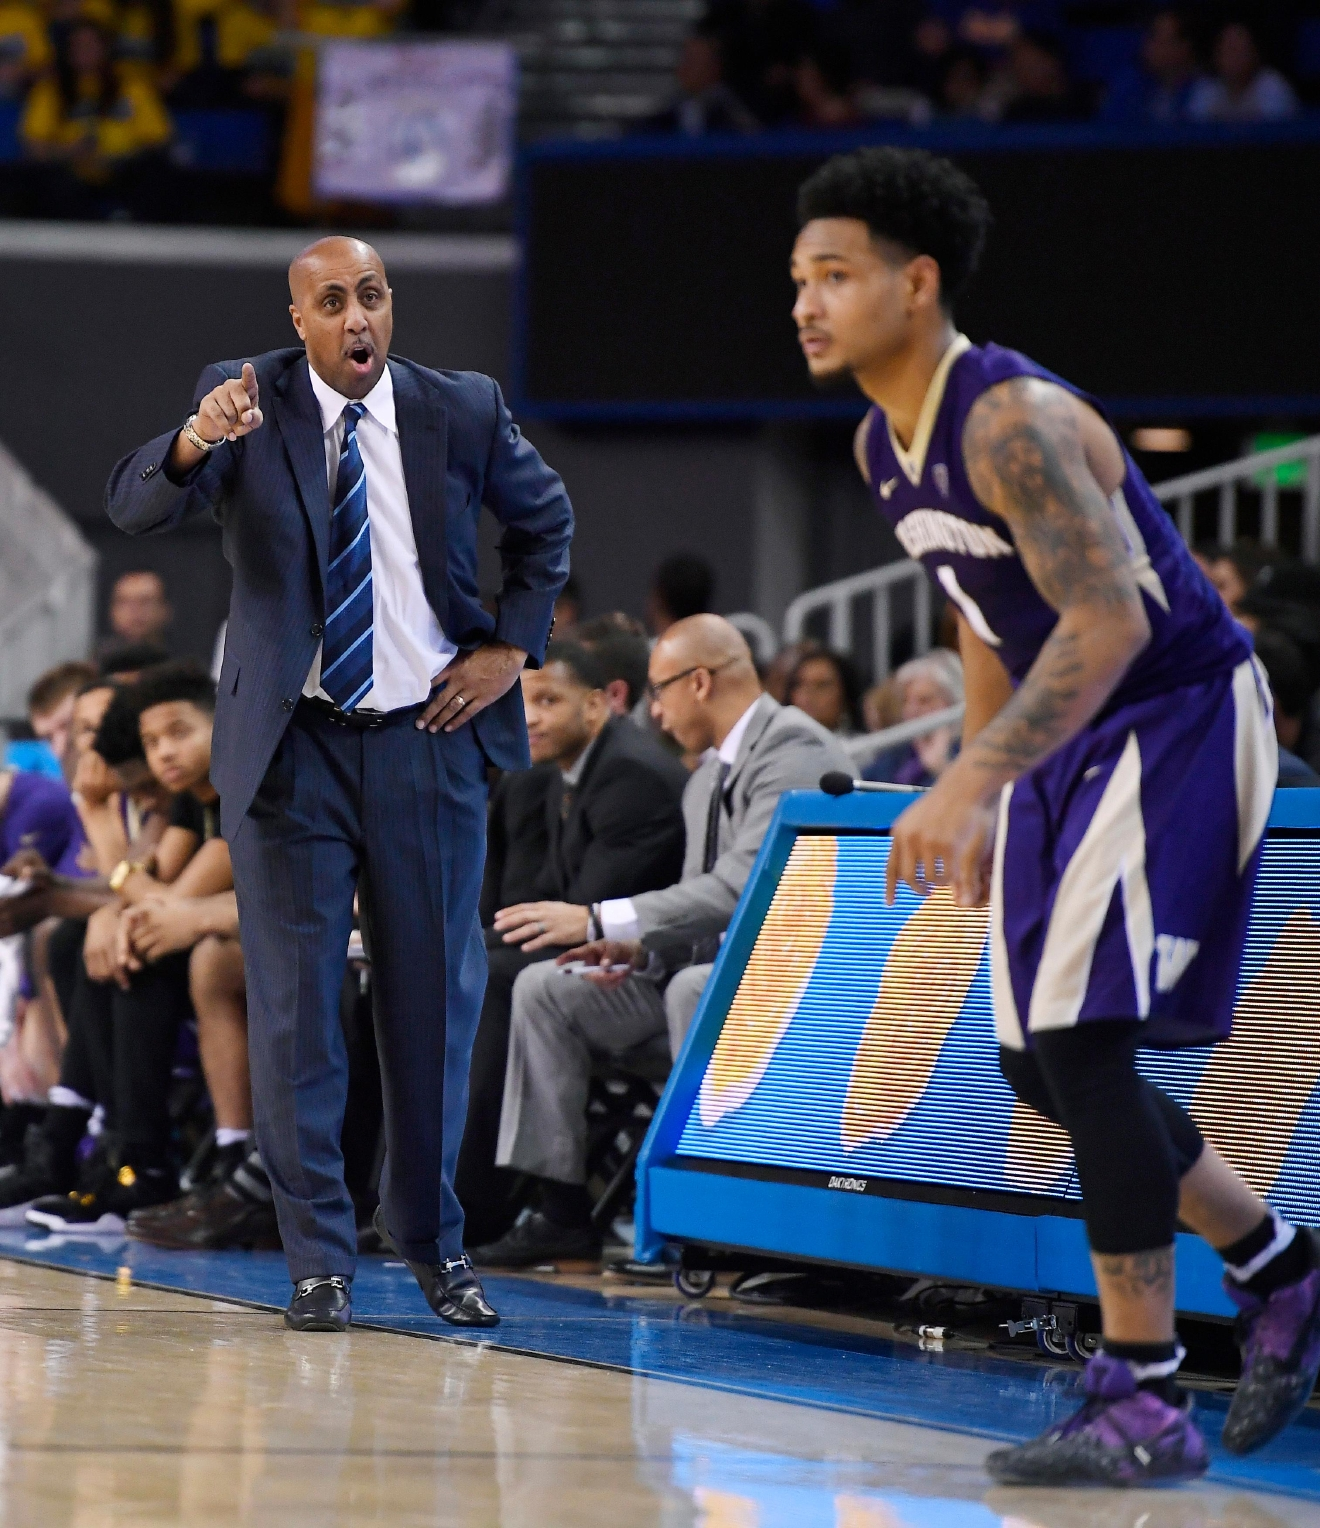 Washington coach Lorenzo Romar, left, yells instructions to guard David Crisp during the second half of the team's NCAA college basketball game against UCLA, Wednesday, March 1, 2017, in Los Angeles. UCLA won 98-66. (AP Photo/Mark J. Terrill)